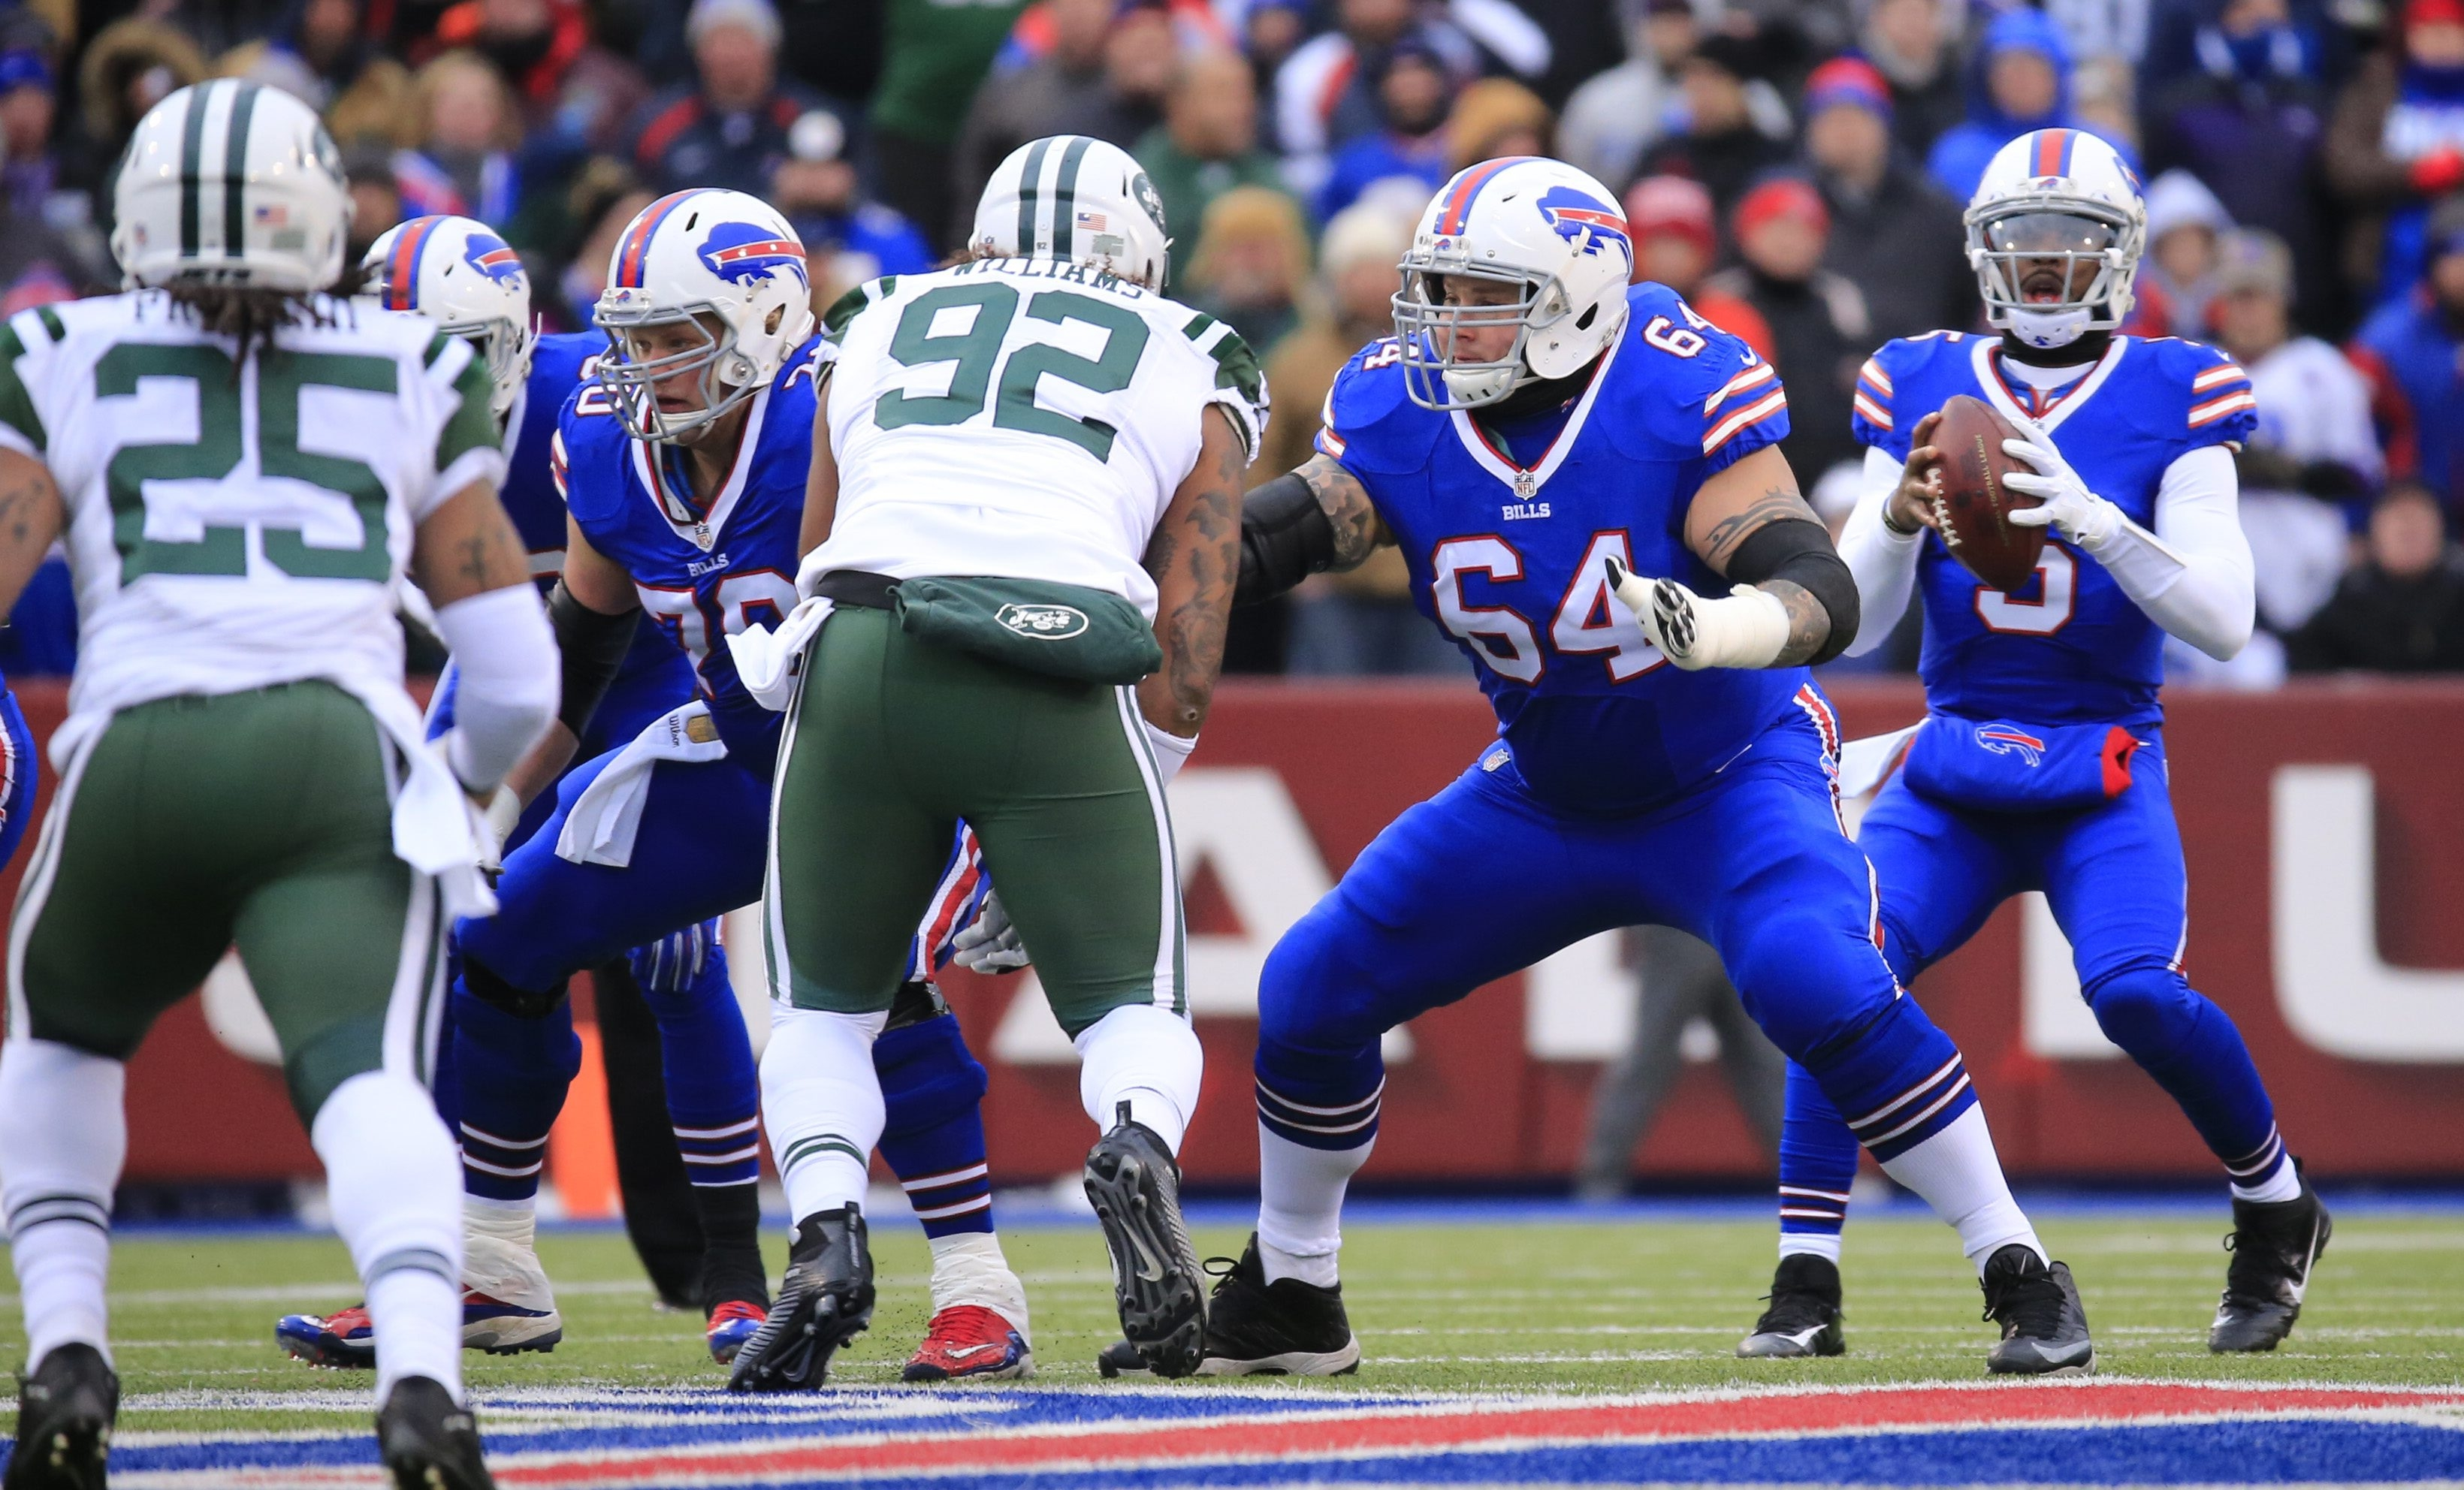 Eric Wood (70) and Richie Incognito (64) were part of a Bills offensive line that took a step forward during the season.